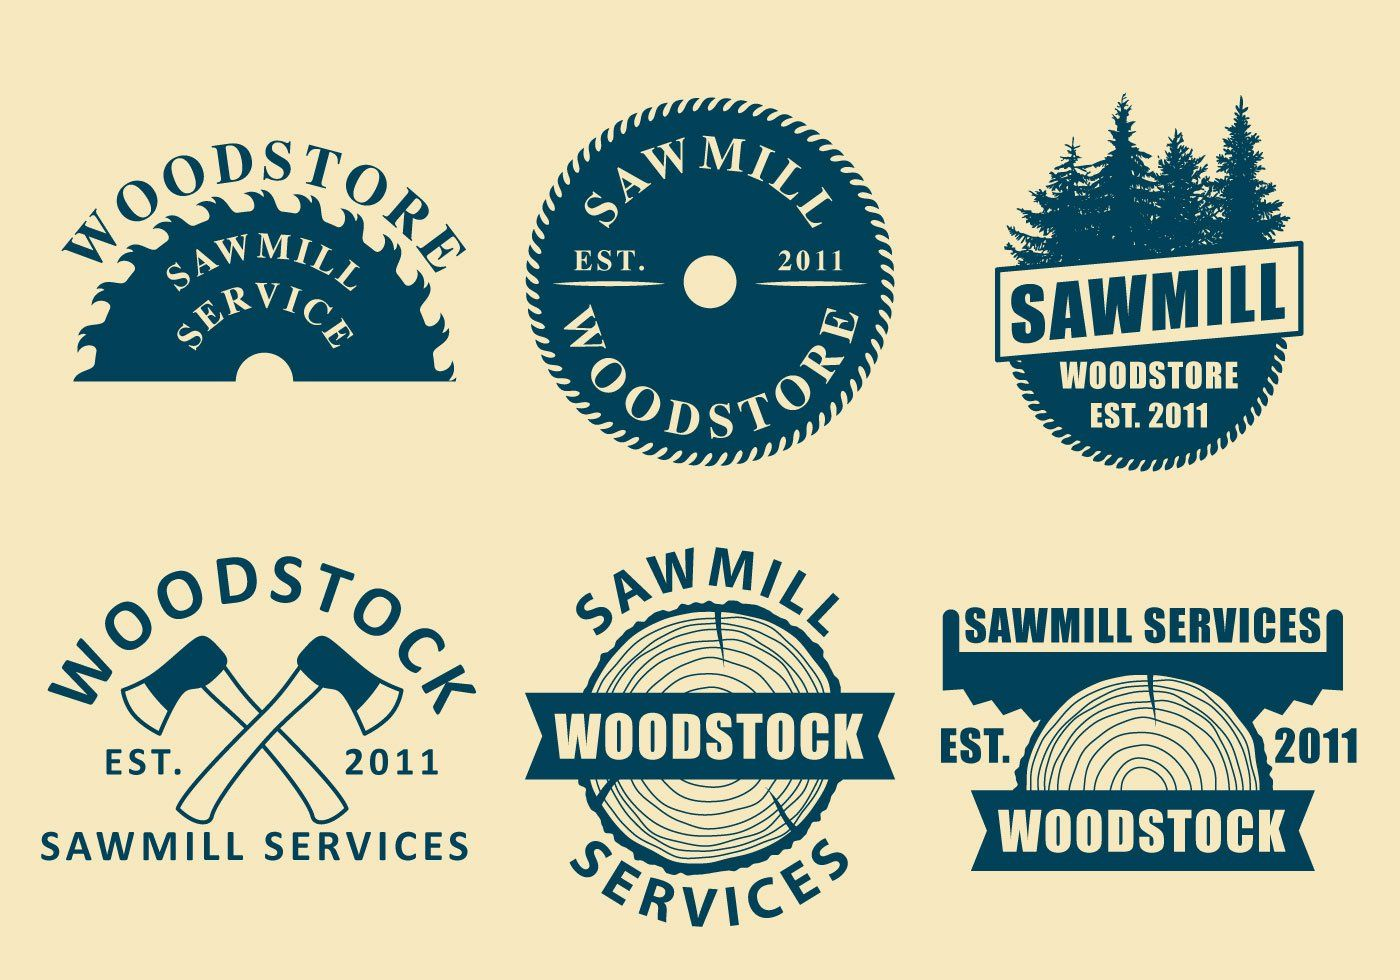 Maybe you need fresh ideas for your new logo with sawmill